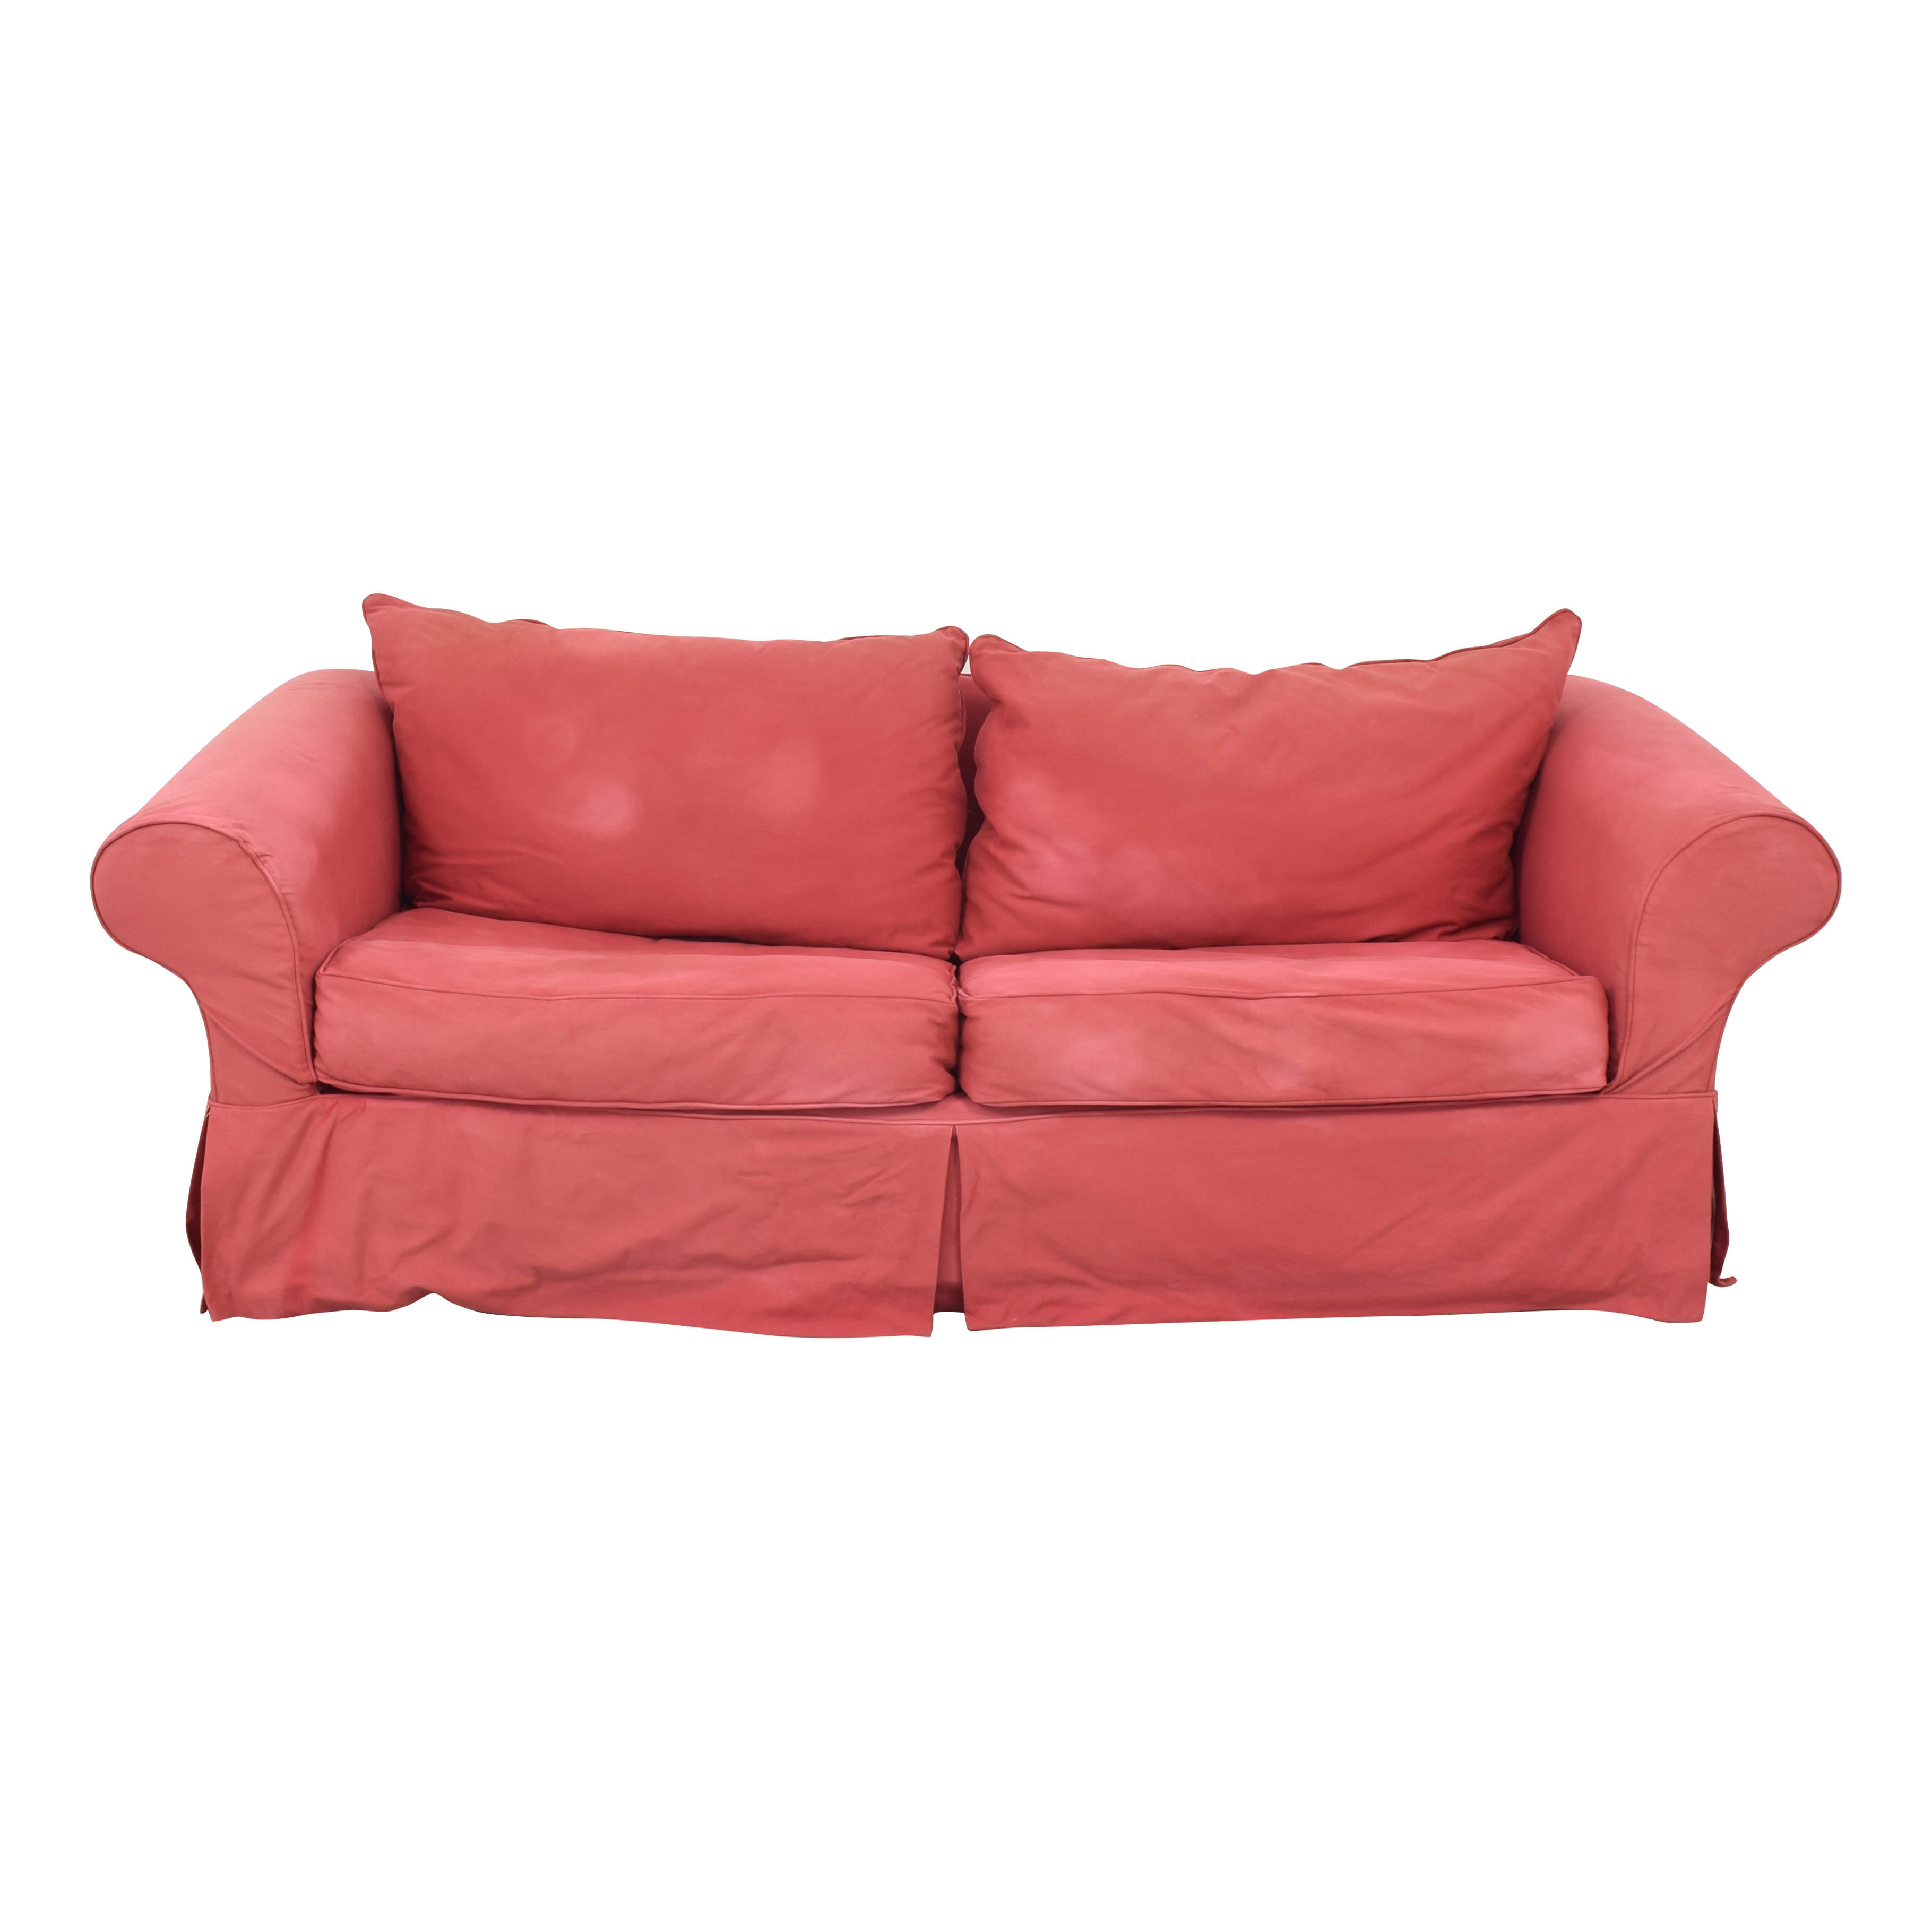 Storehouse Queen Sleeper Sofa Storehouse